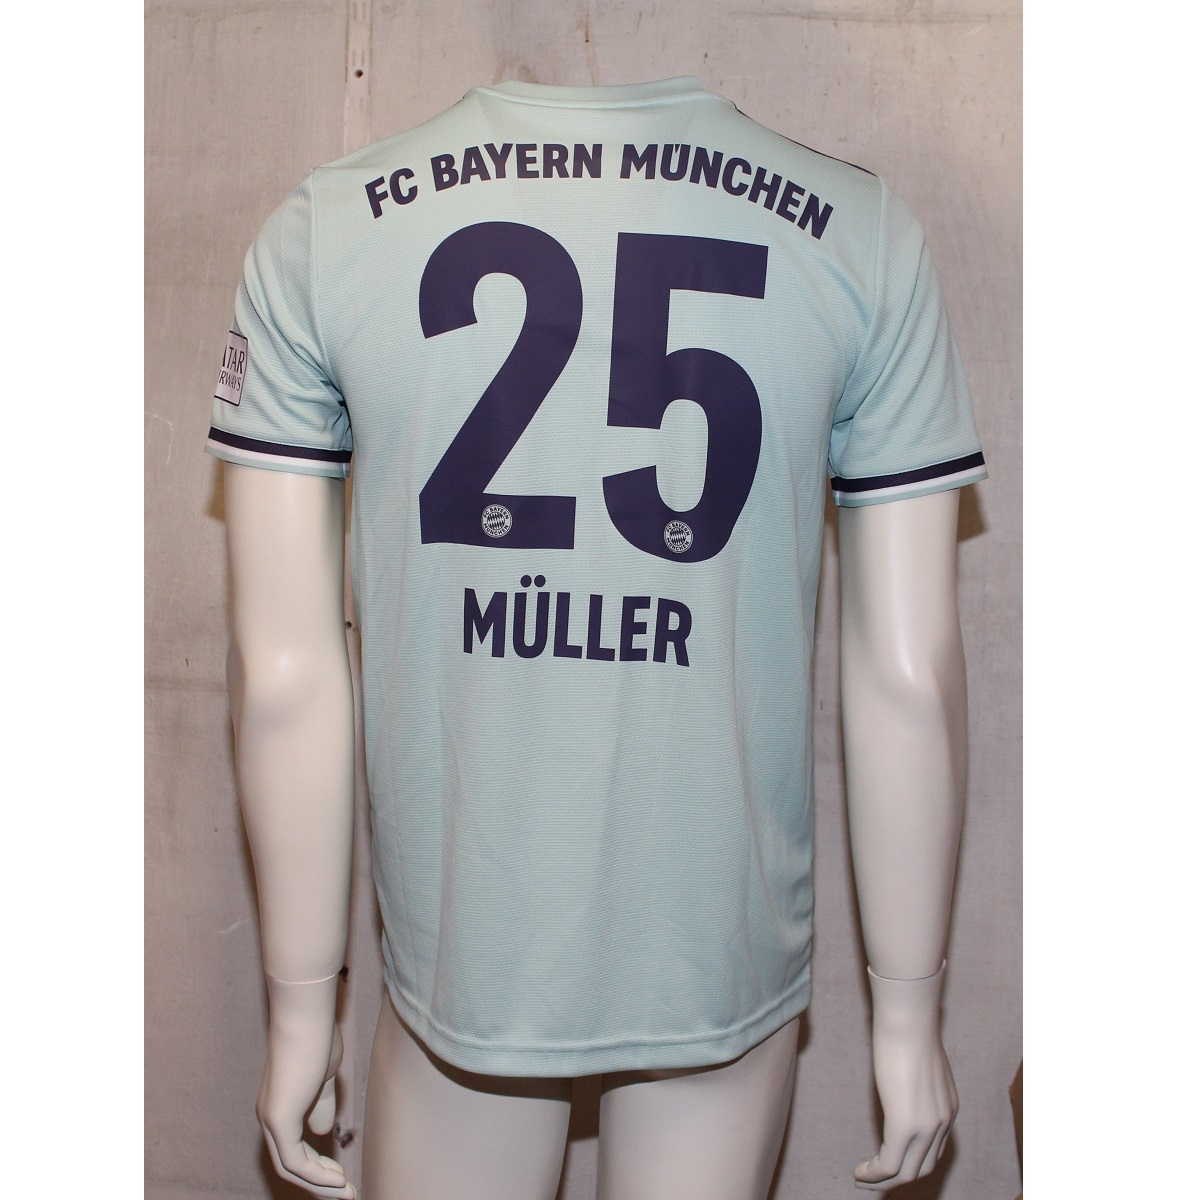 Image of   FC Bayern München away jersey 2018/19 - Muller 25-M